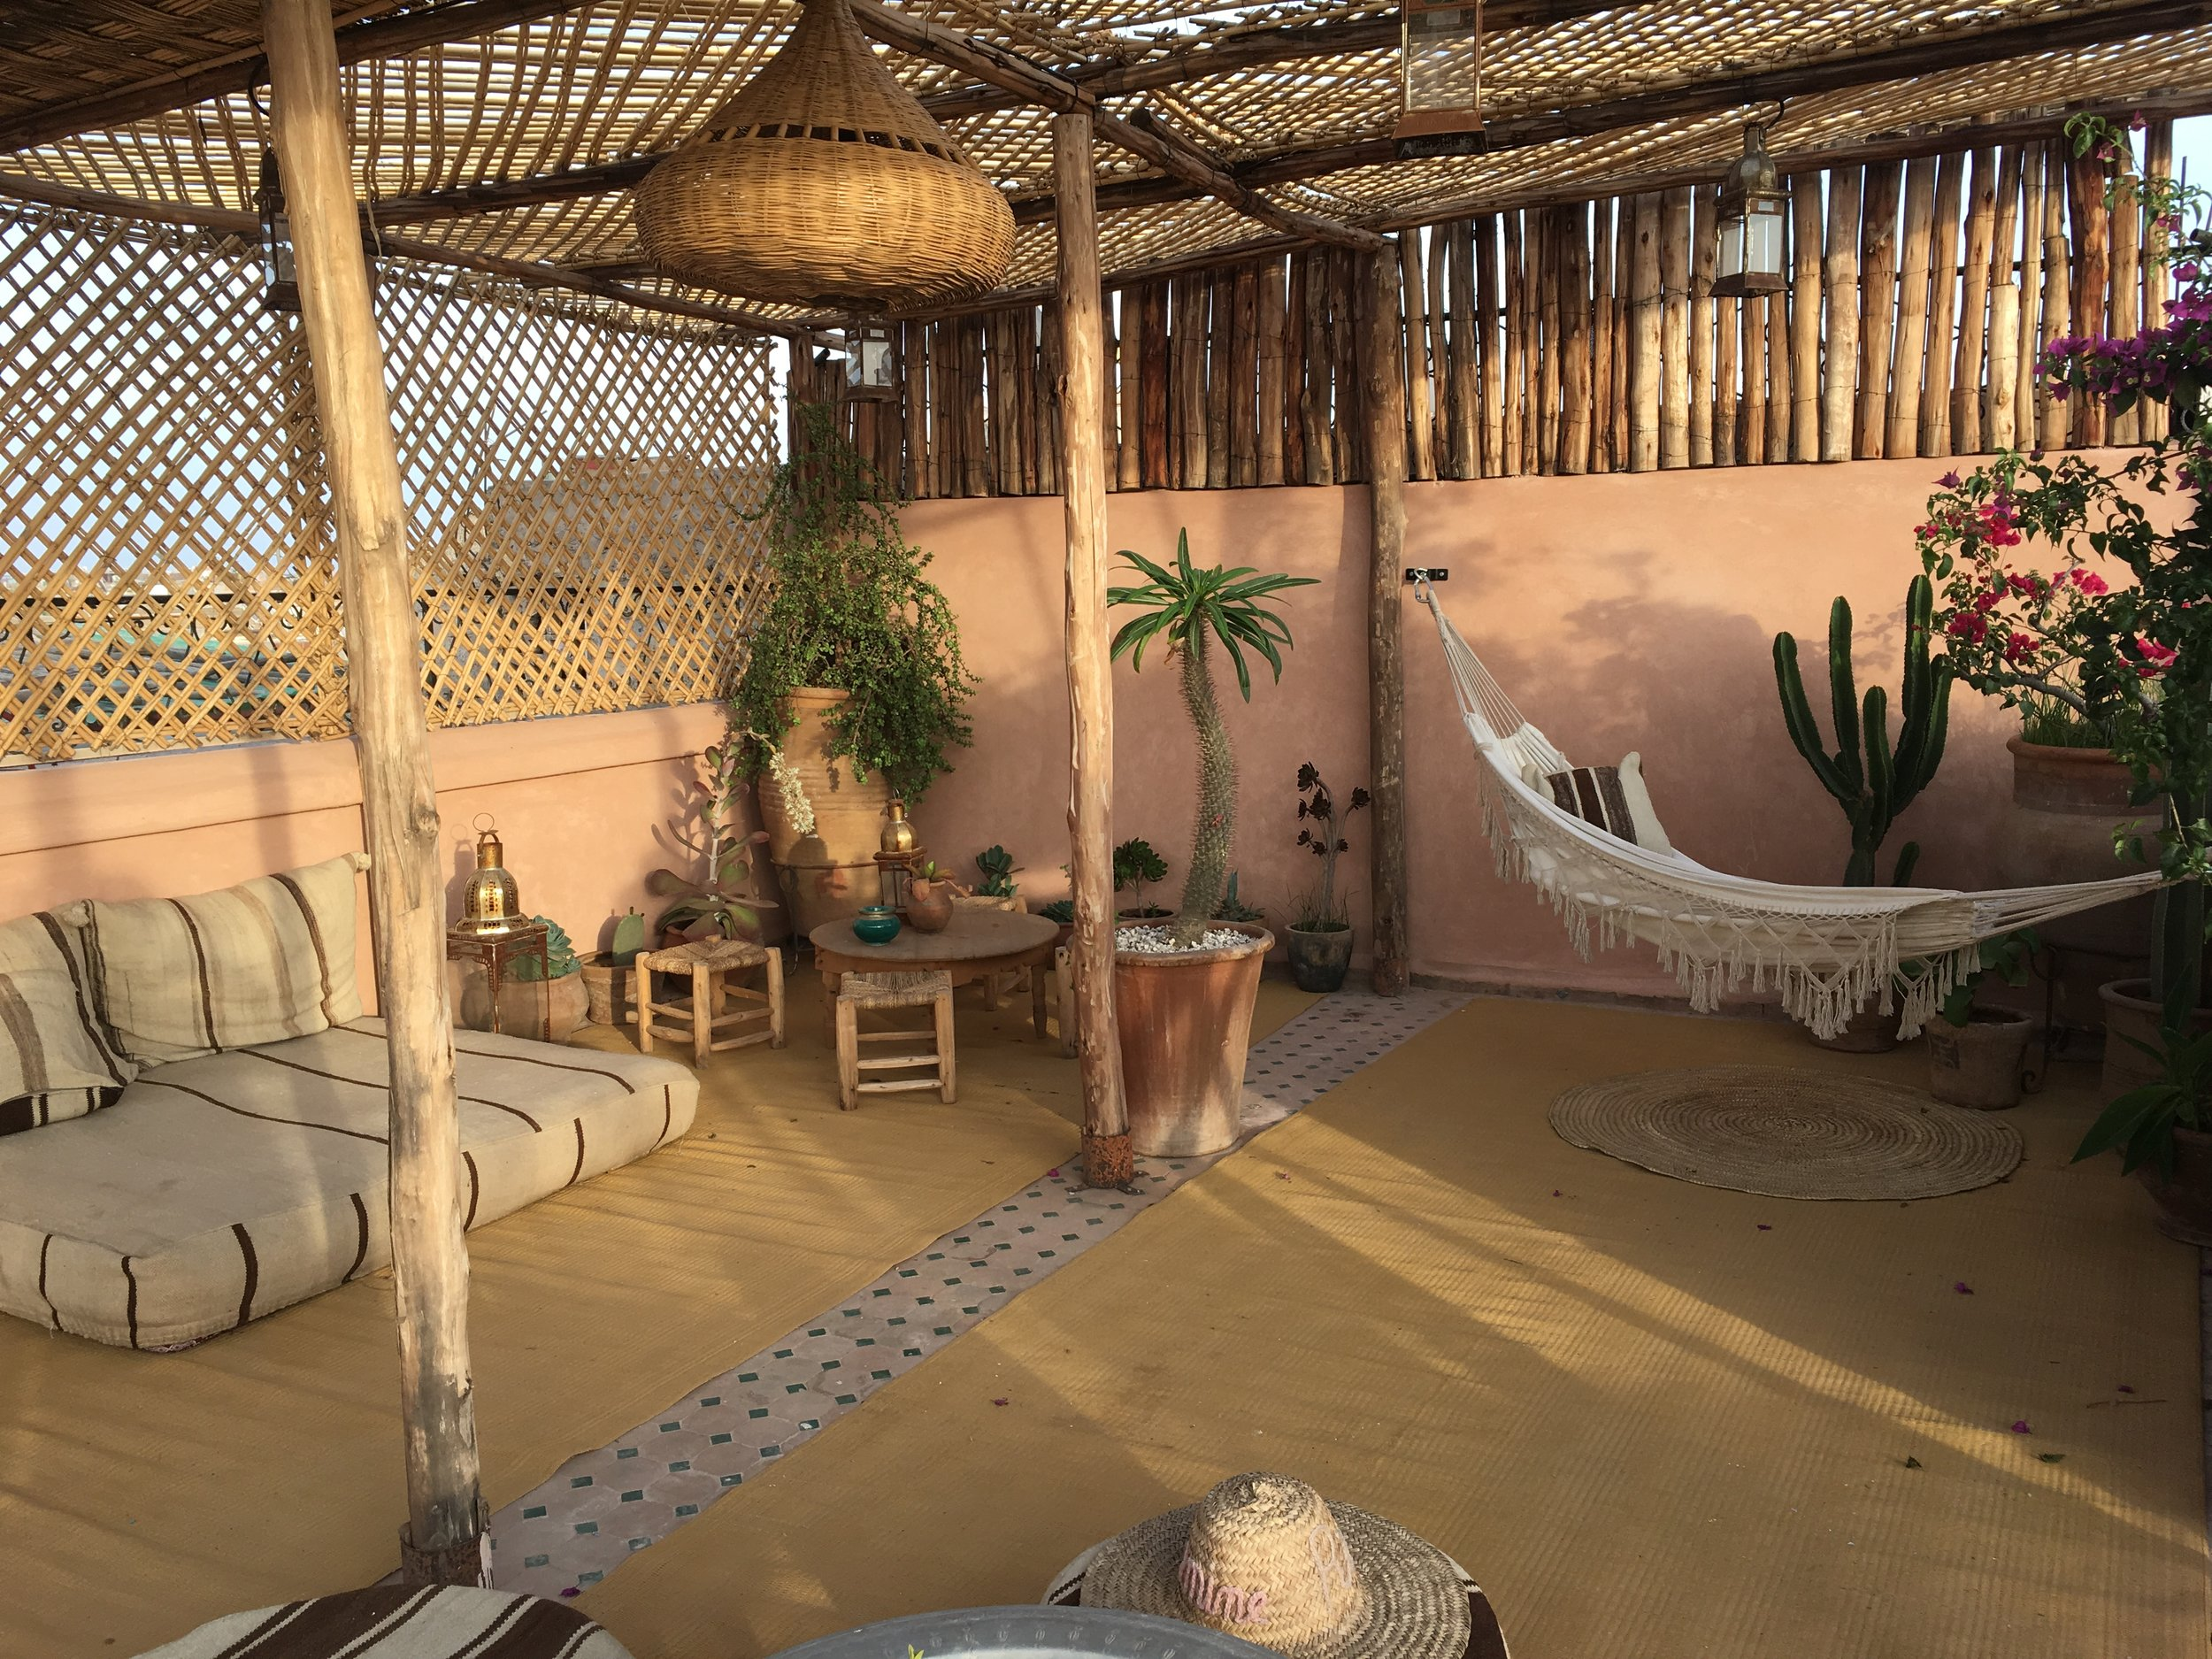 The beautiful roof terrace at Le Riad Yasmine.